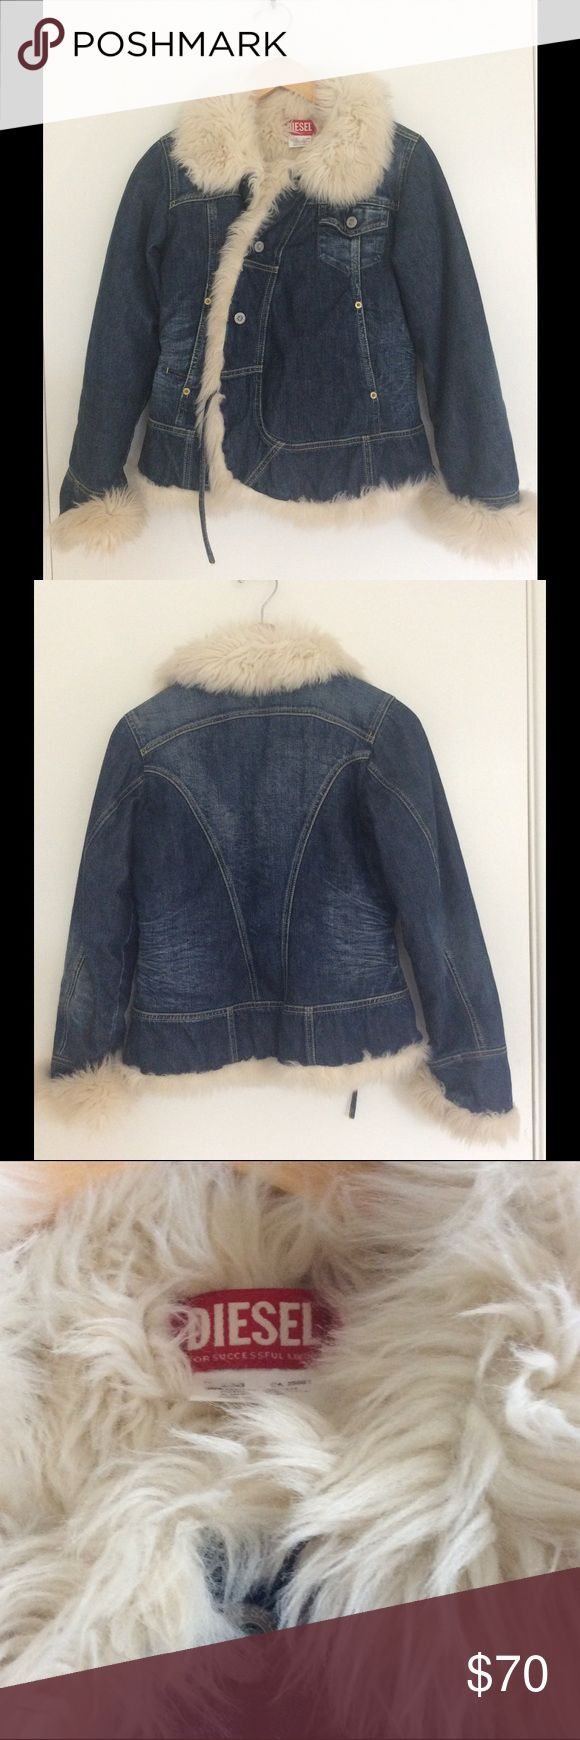 Diesel Denim Jacket Size Medium.  100 cotton.  Measures approximately 17 inches armpit to armpit when garment is laid flat.  Measures approximately 22 inches in length. Diesel Jackets & Coats